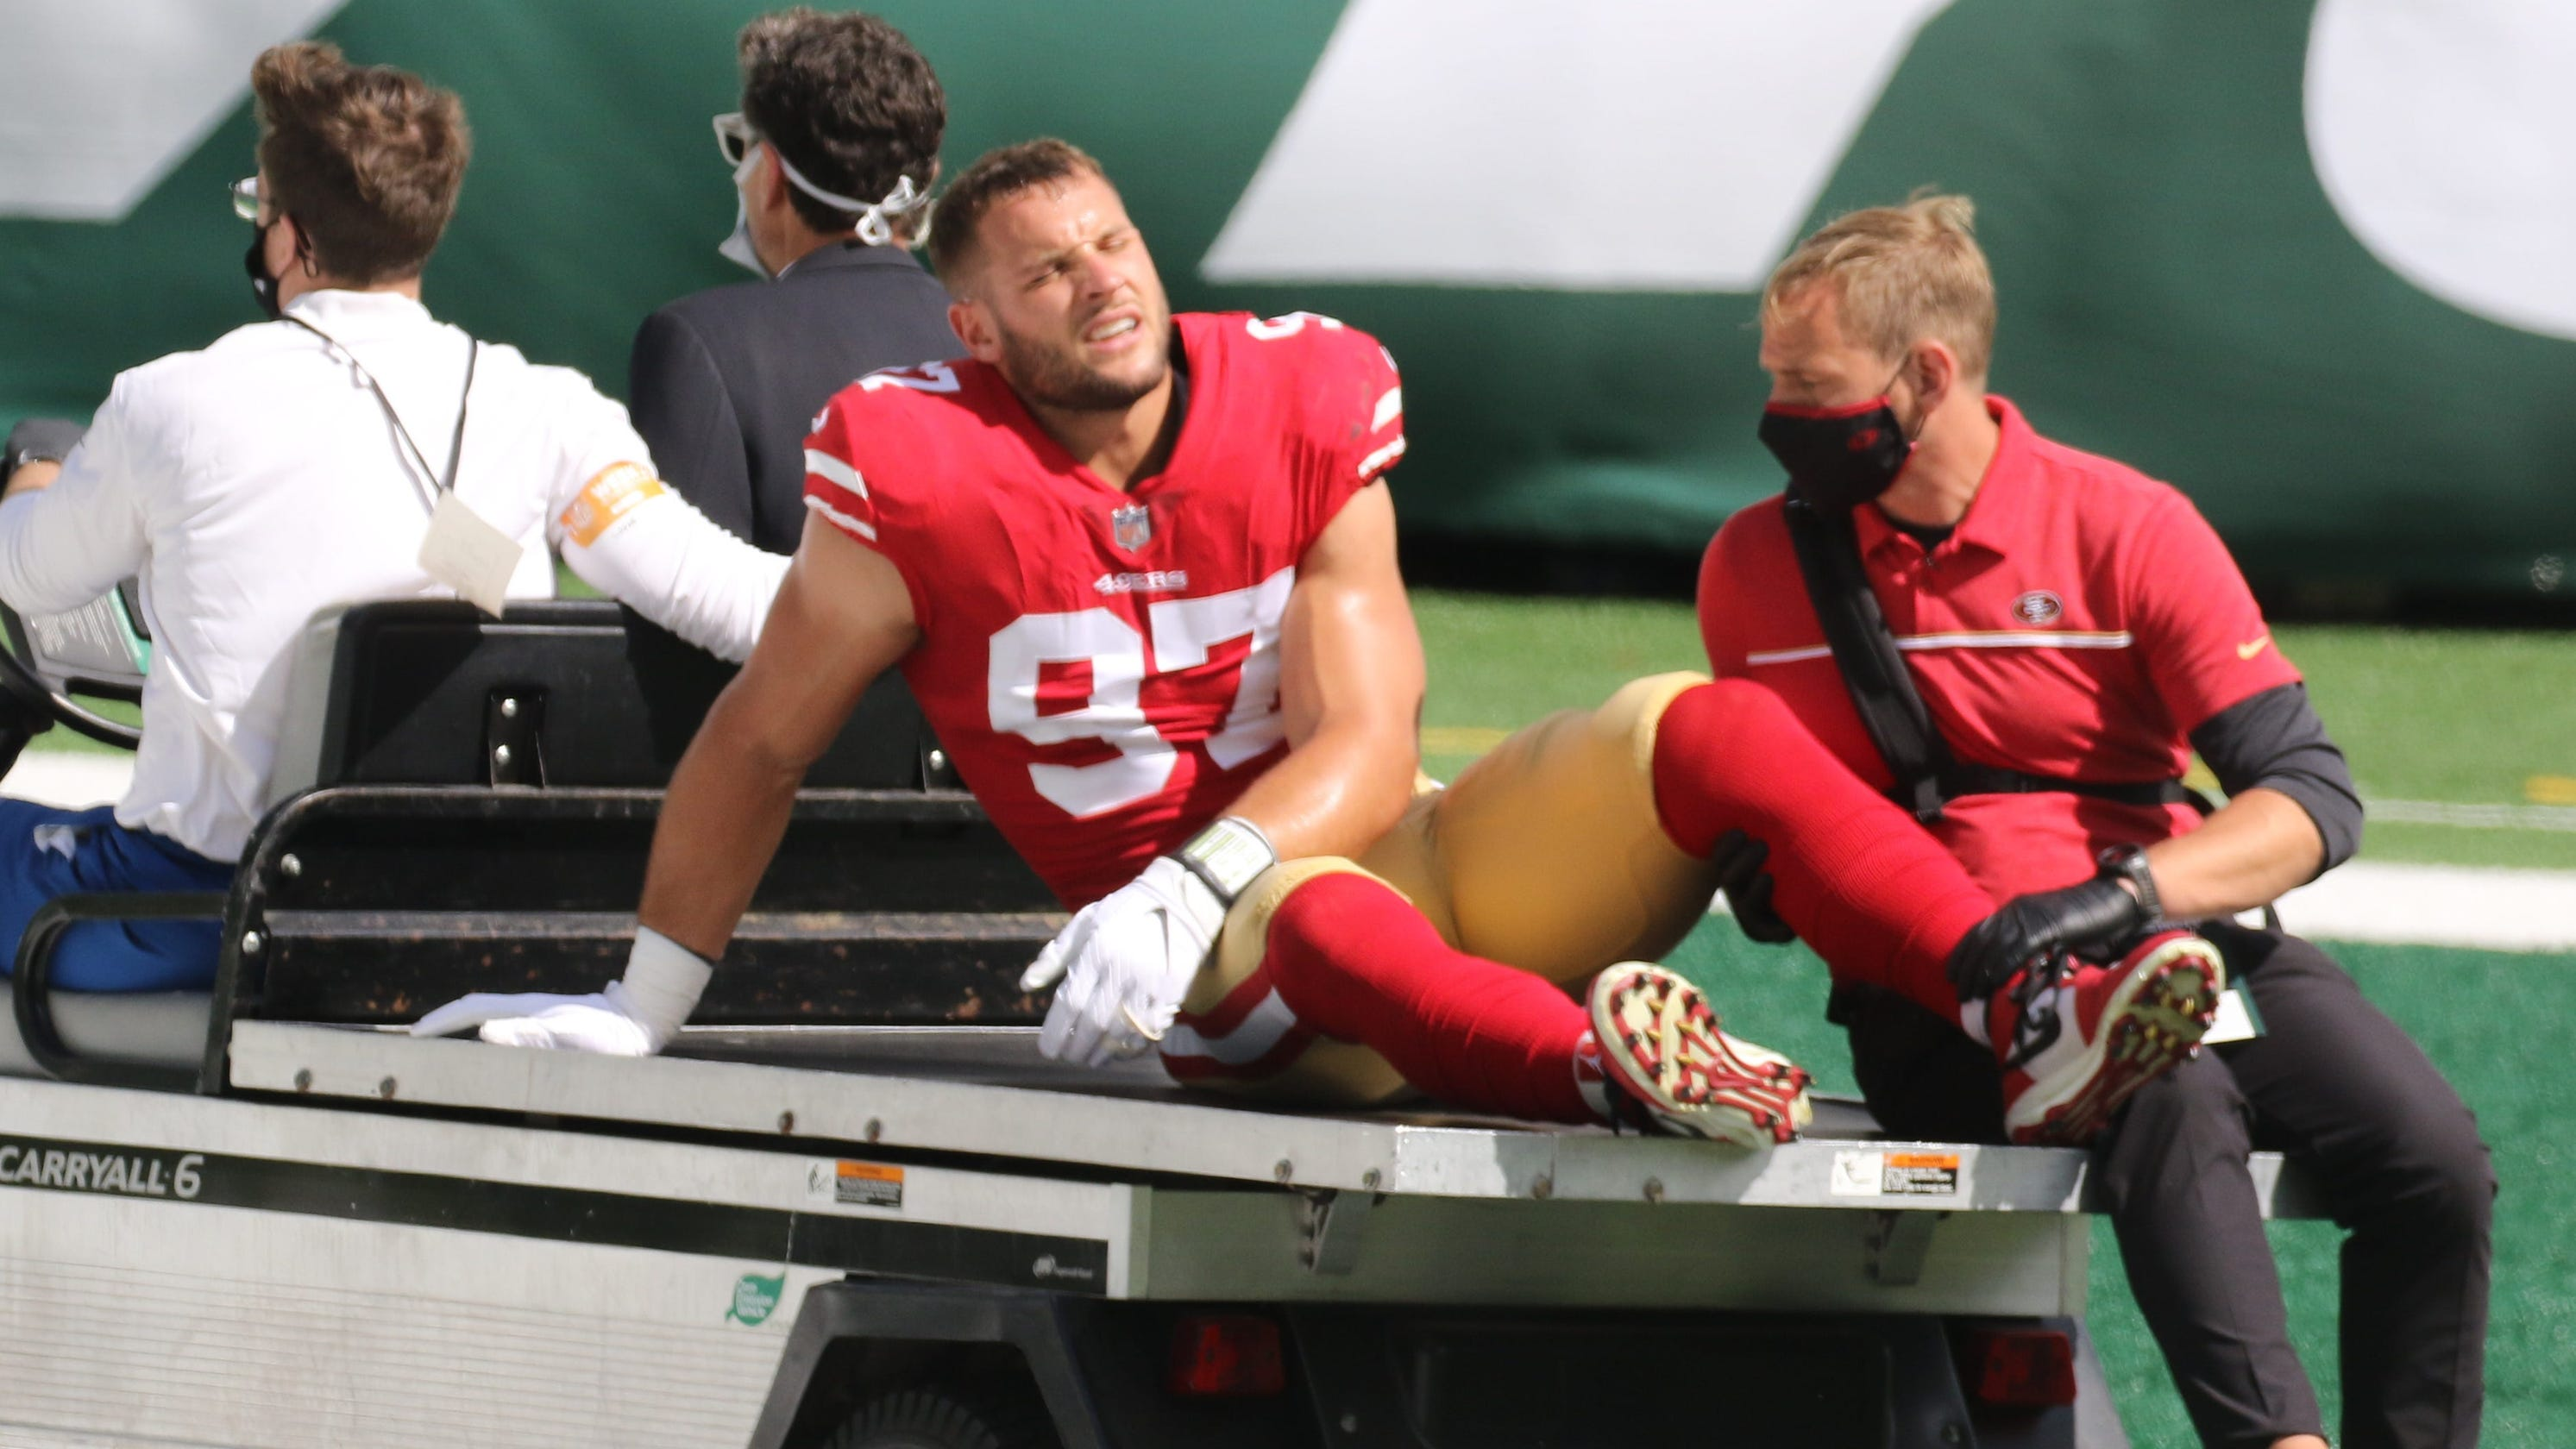 49ers coach Kyle Shanahan, DE Arik Armstead criticize turf at MetLife Stadium after rash of injuries